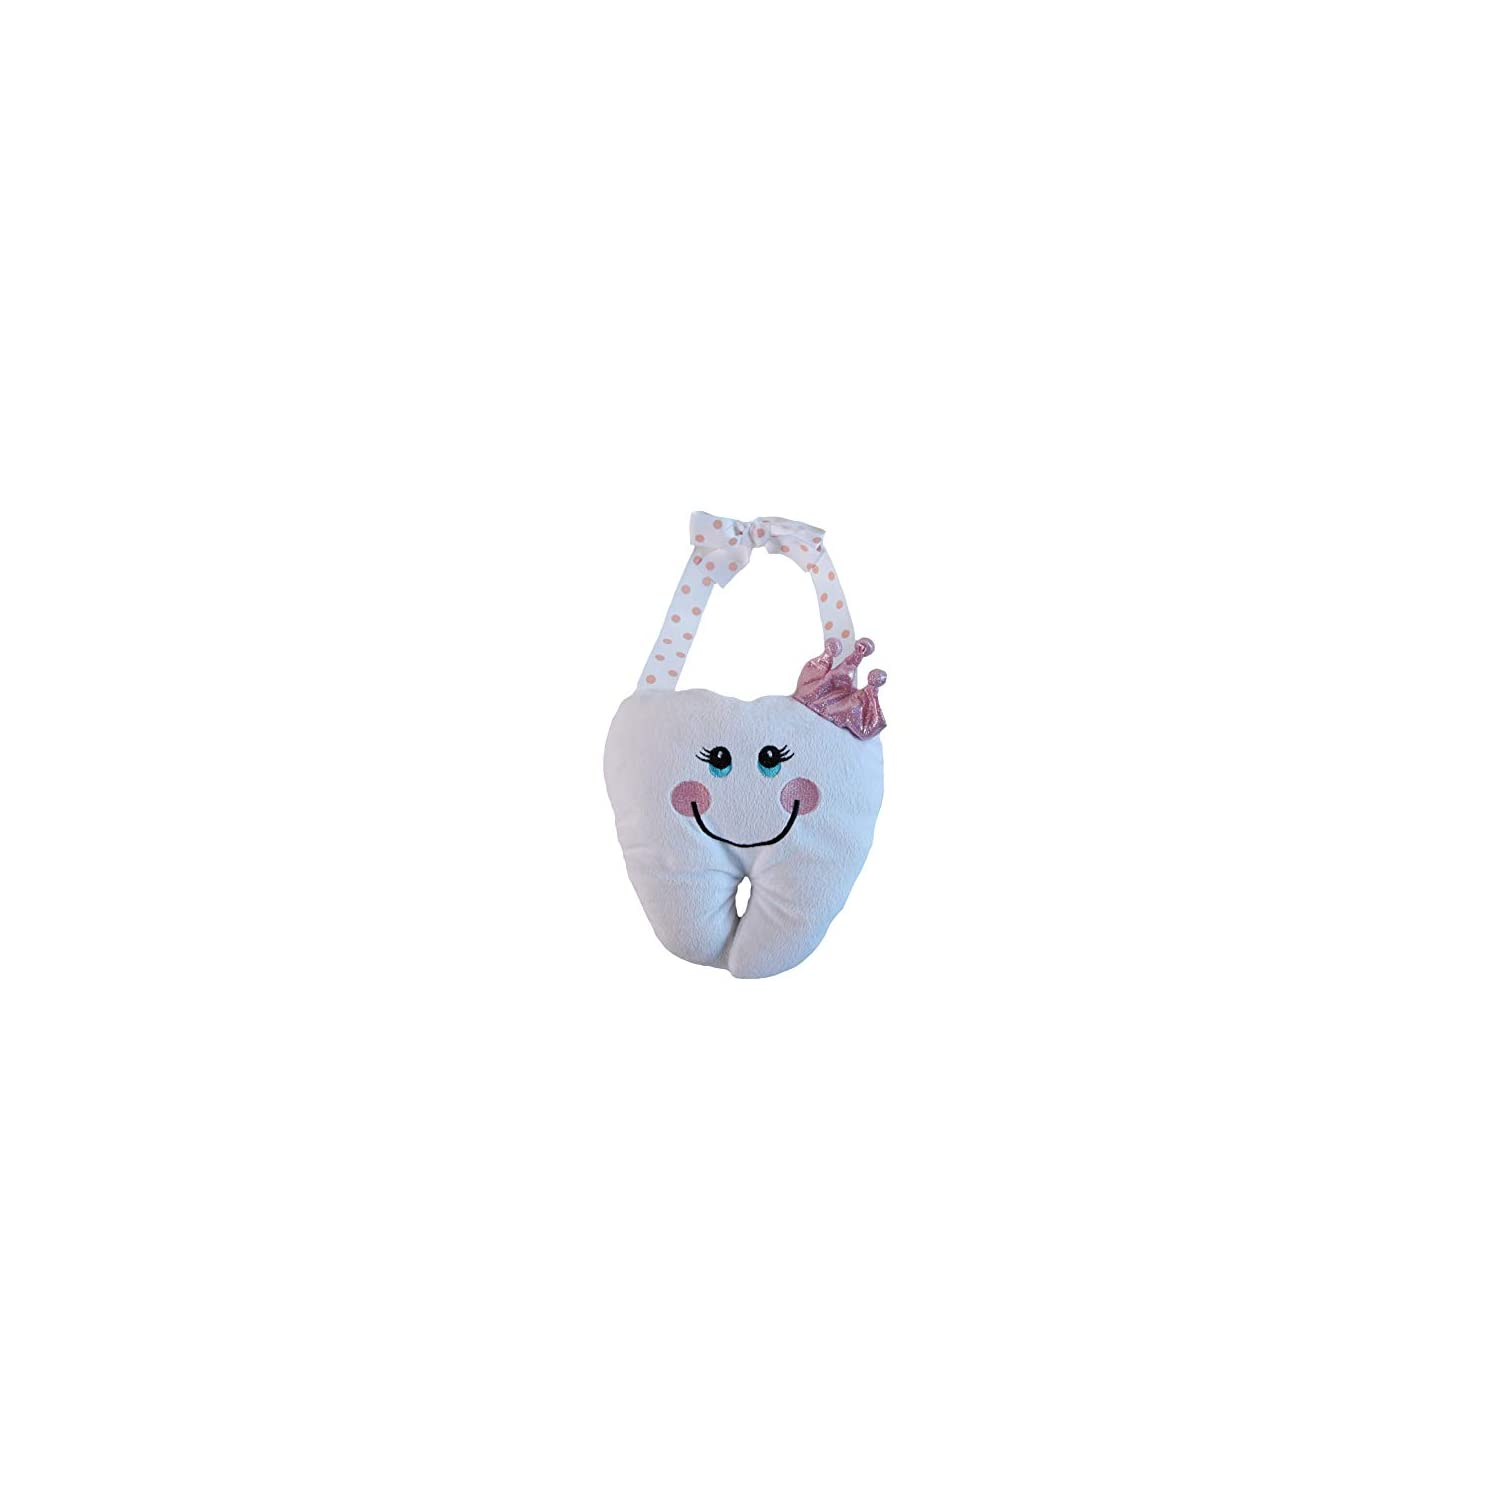 Snuggle Stuffs Tooth Fairy Lost & Found Pillow, Pink Princess